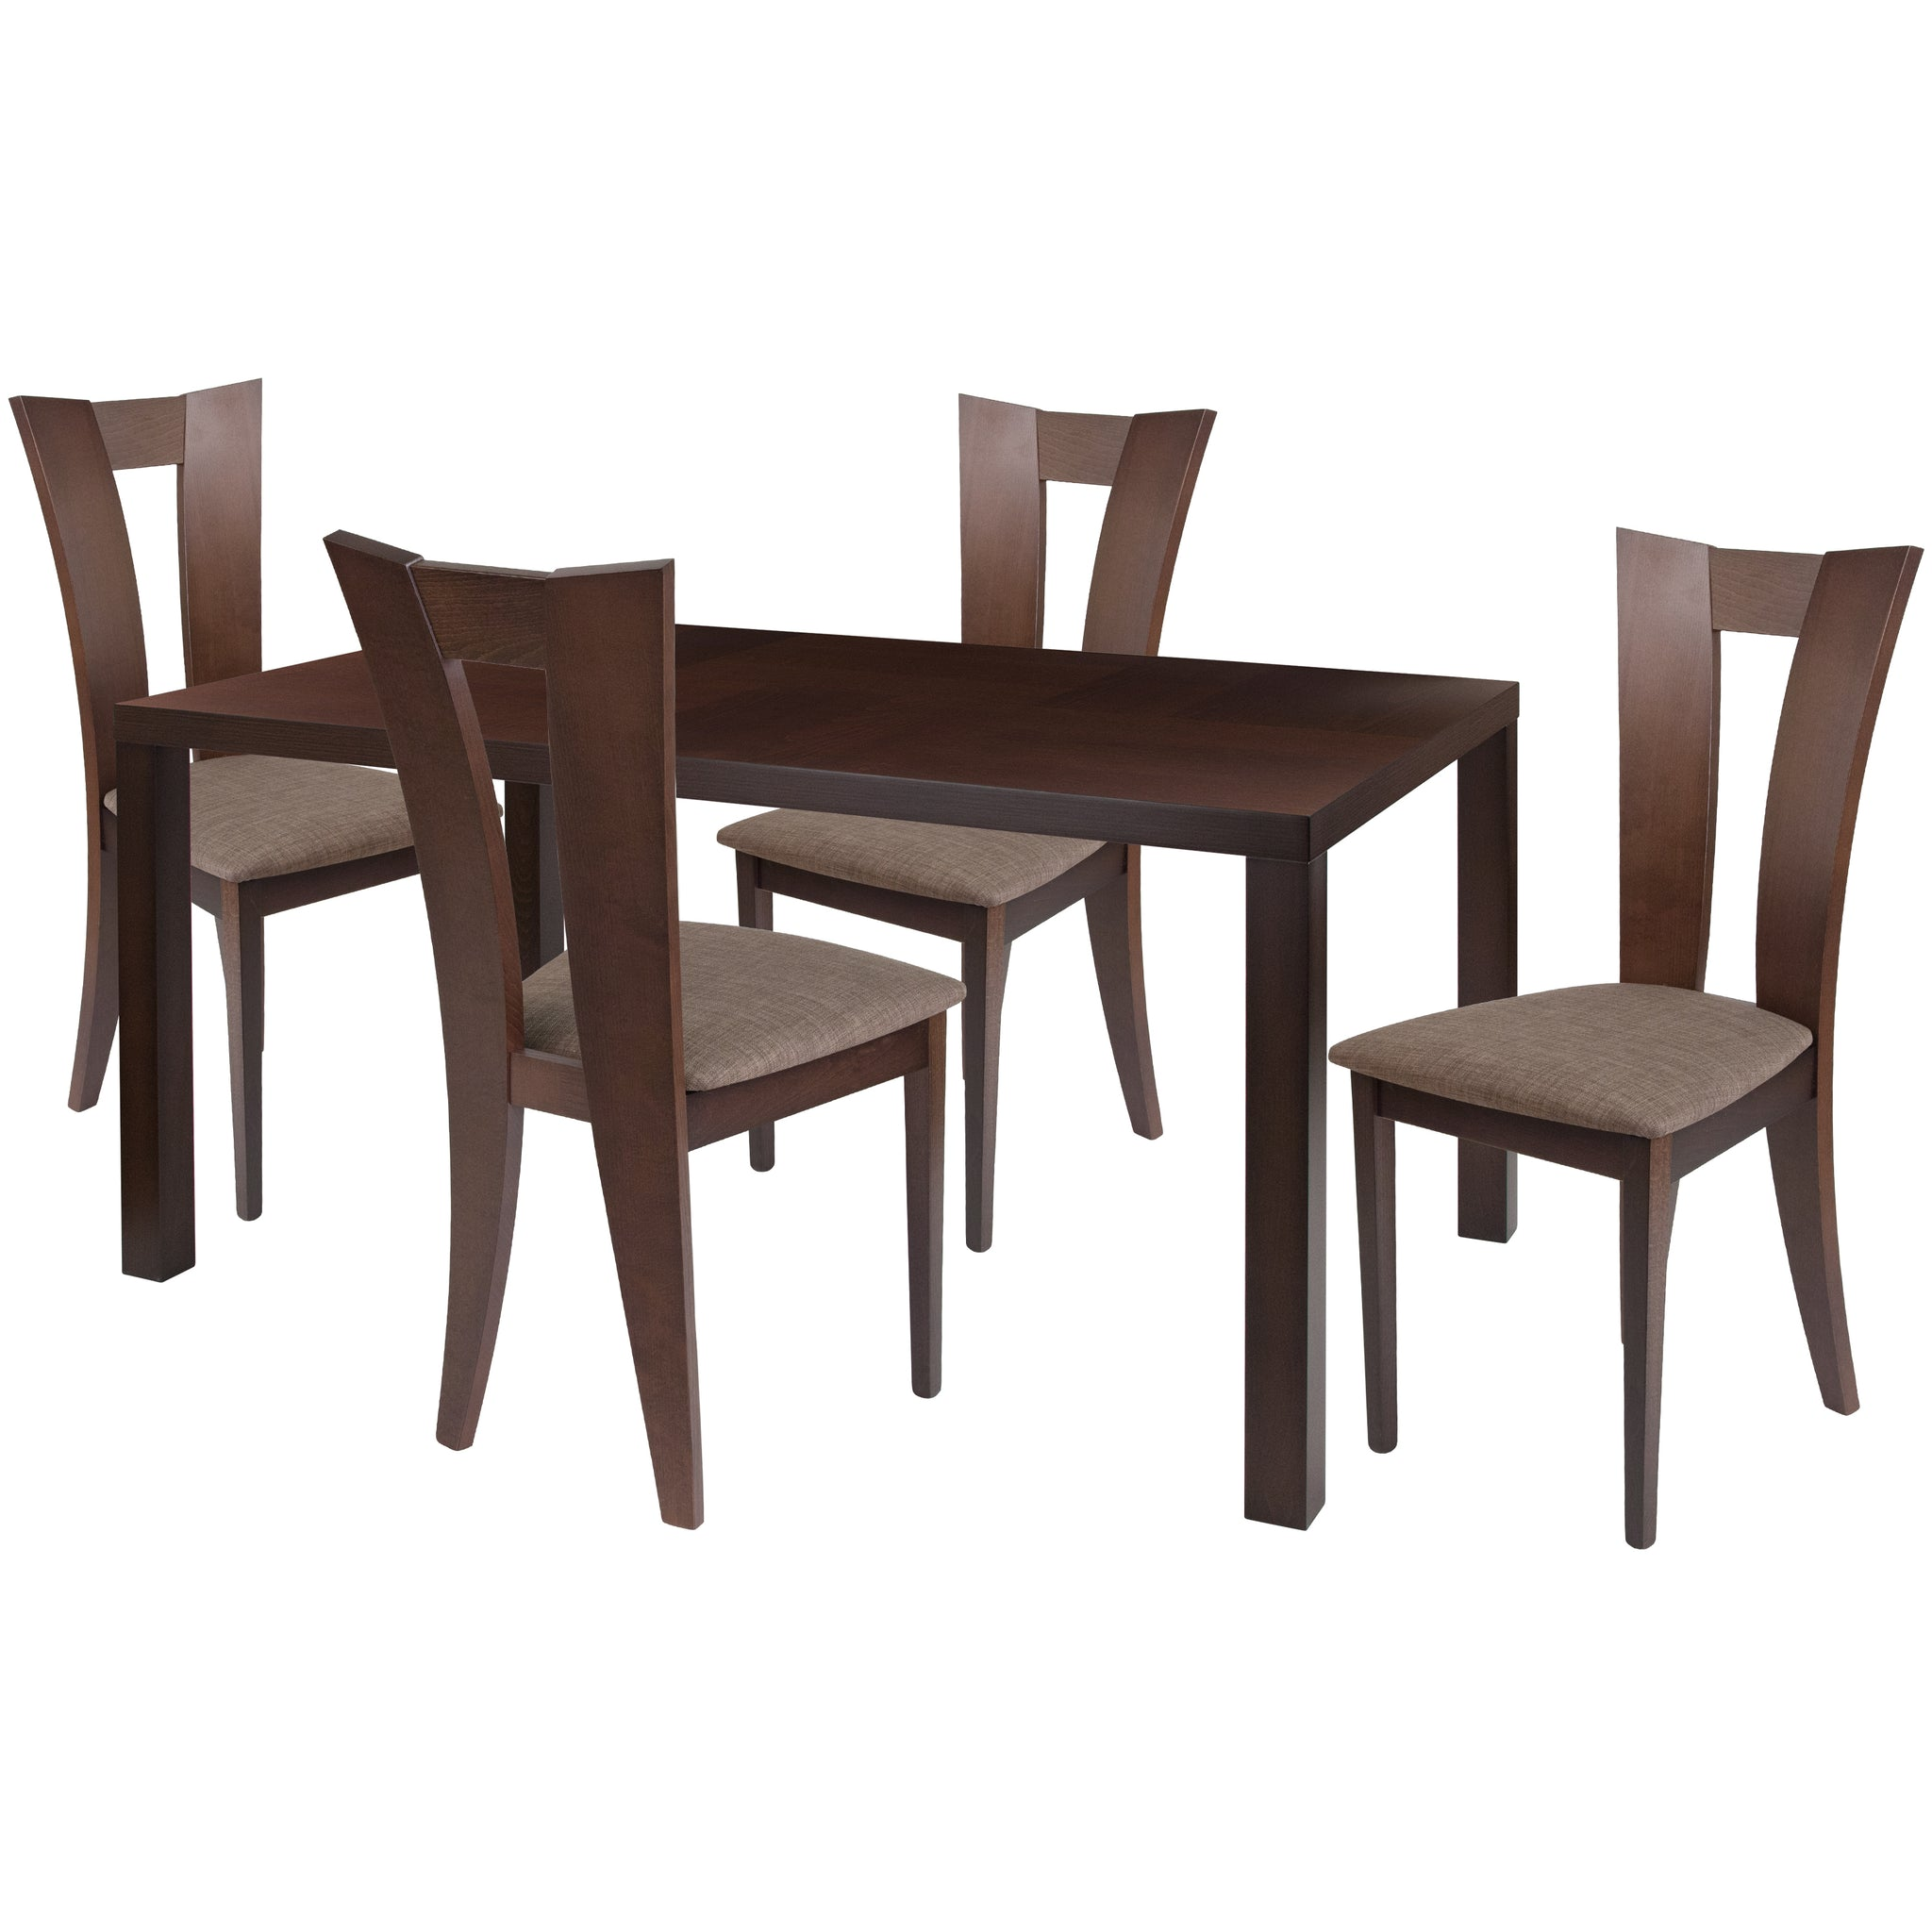 Ardley 5 Piece Espresso Wood Dining Table Set with Slotted Back Wood Dining Chairs - Padded Seats